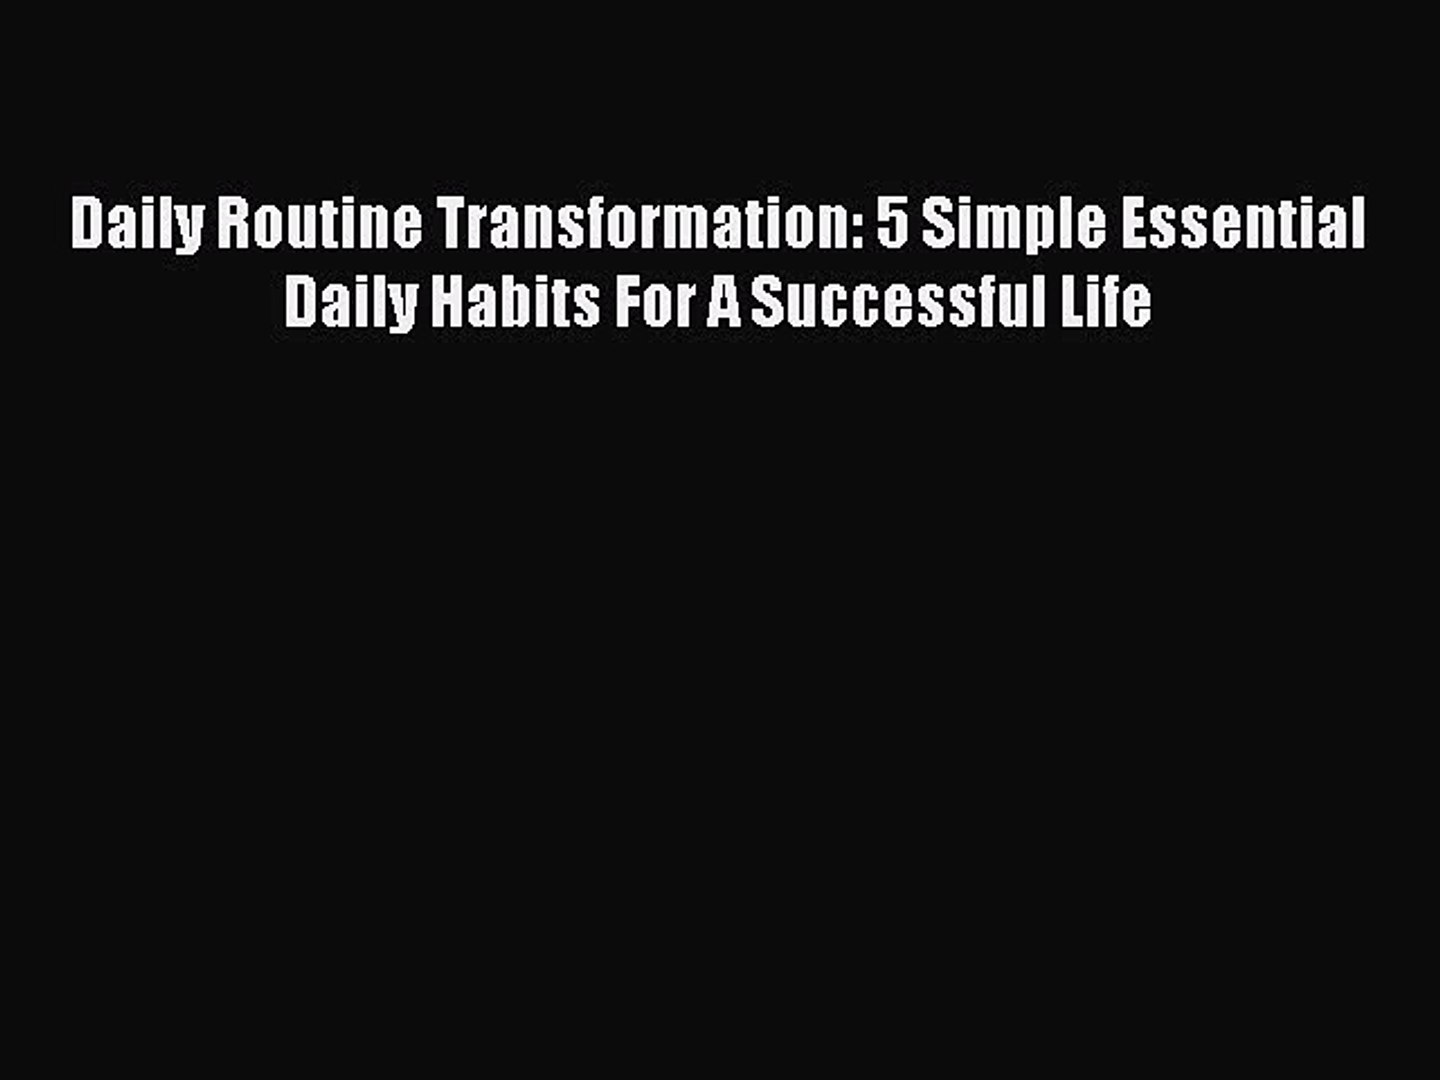 PDF Daily Routine Transformation: 5 Simple Essential Daily Habits For A Successful Life Free